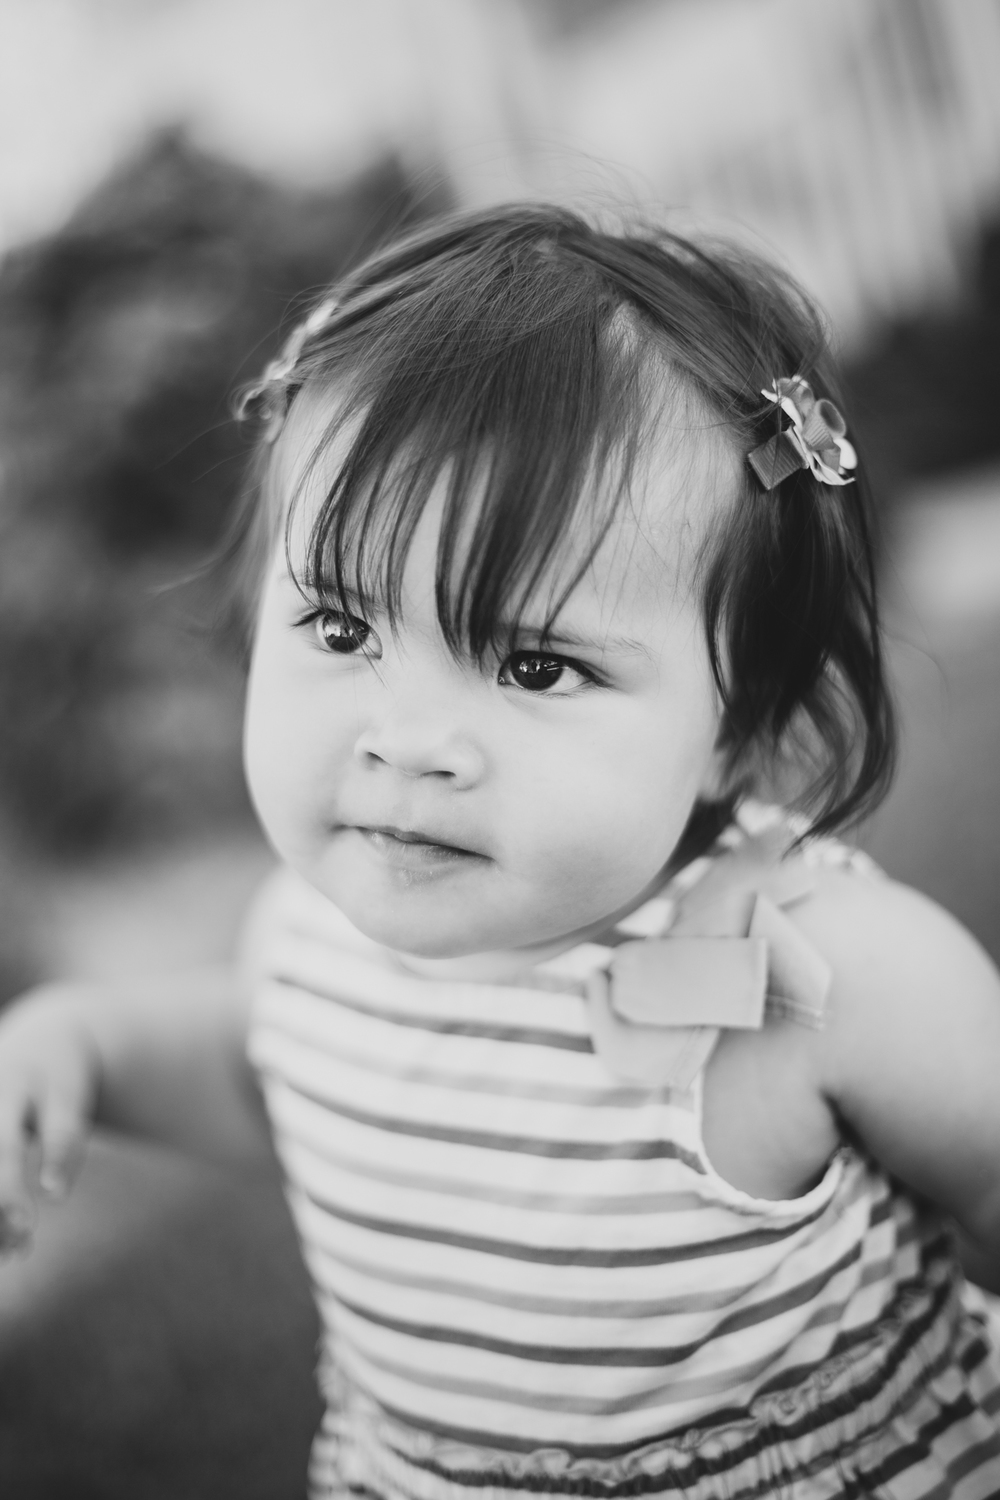 glendale-photography-baby-mae-black-and-white-portrait